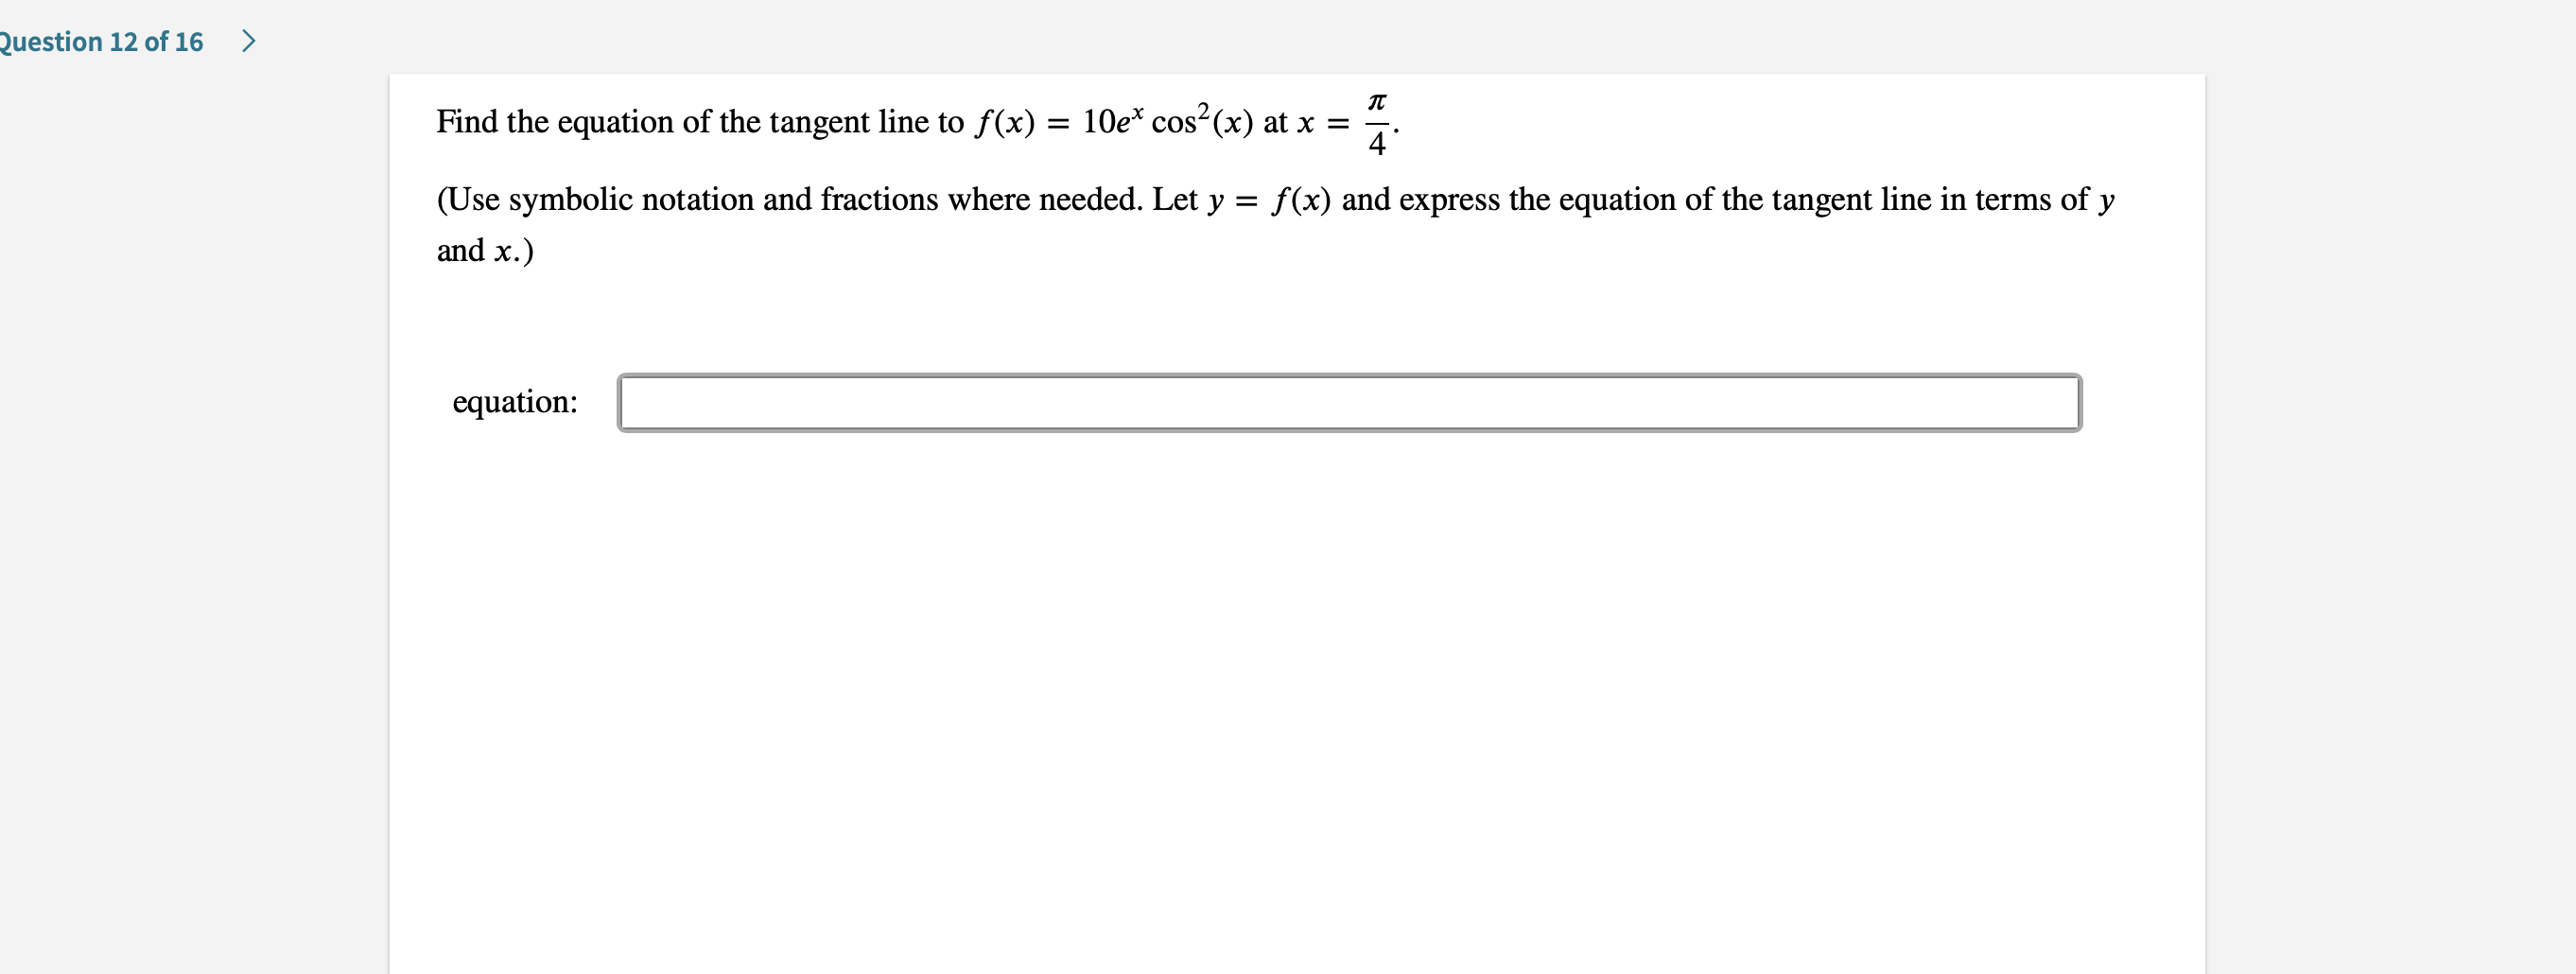 Question 12 of 16 > Find the equation of the tangent line to f(x) = 10e* cos2(x) at x 4 (Use symbolic notation and fractions where needed. Let y f(x) and express the equation of the tangent line in terms of y = and x.) equation